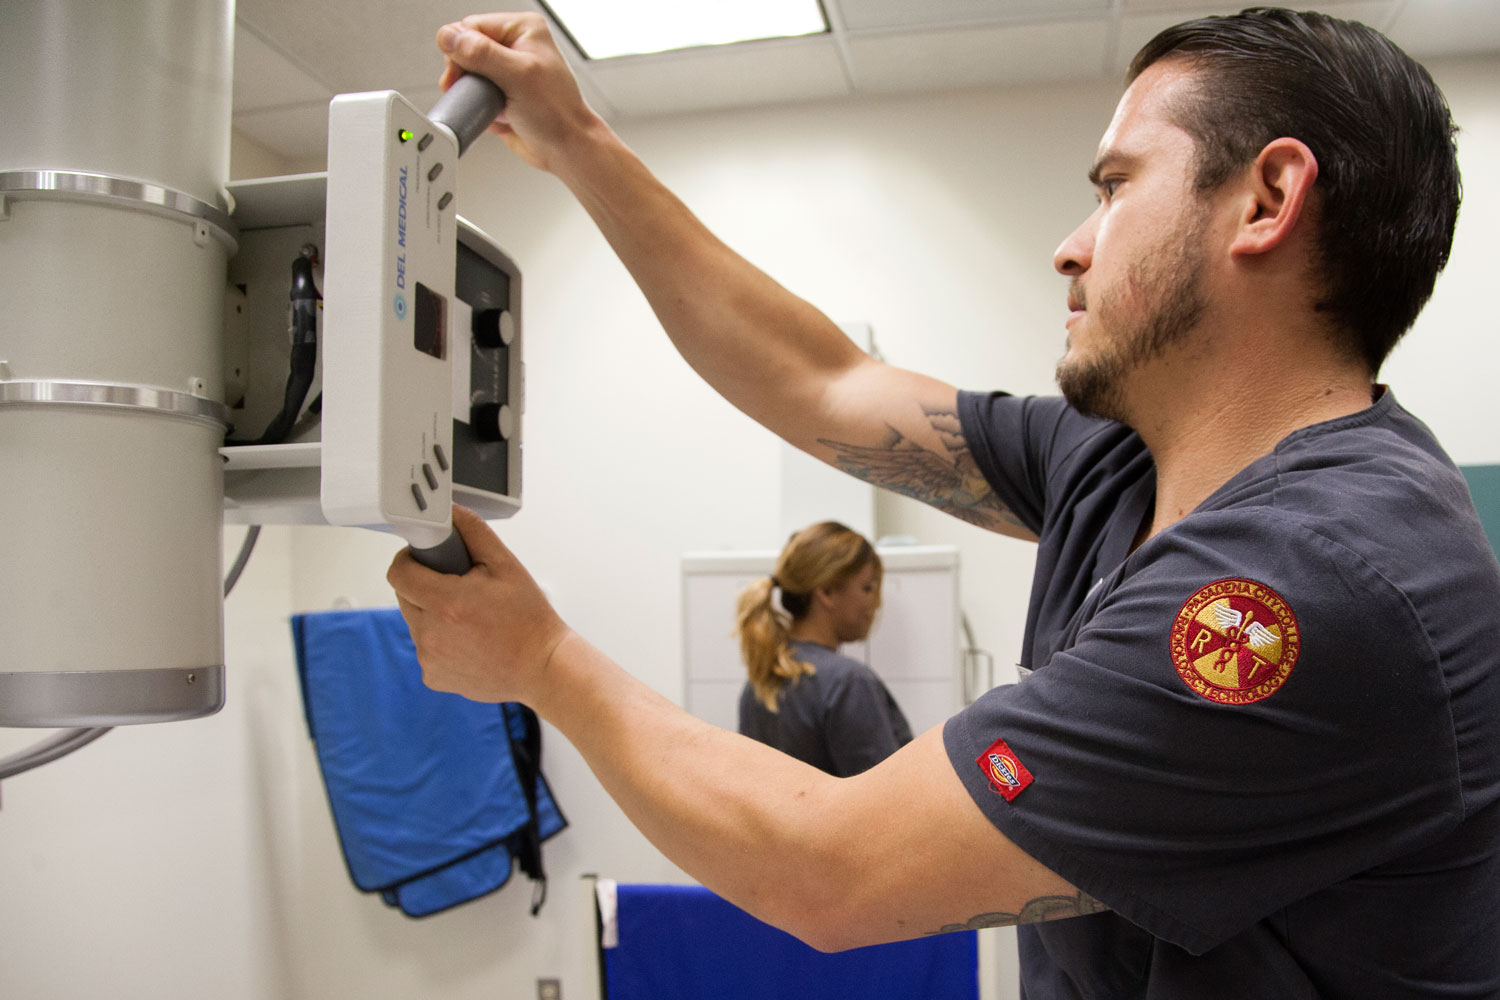 A student gets practical training during a Radiologic Technology course.